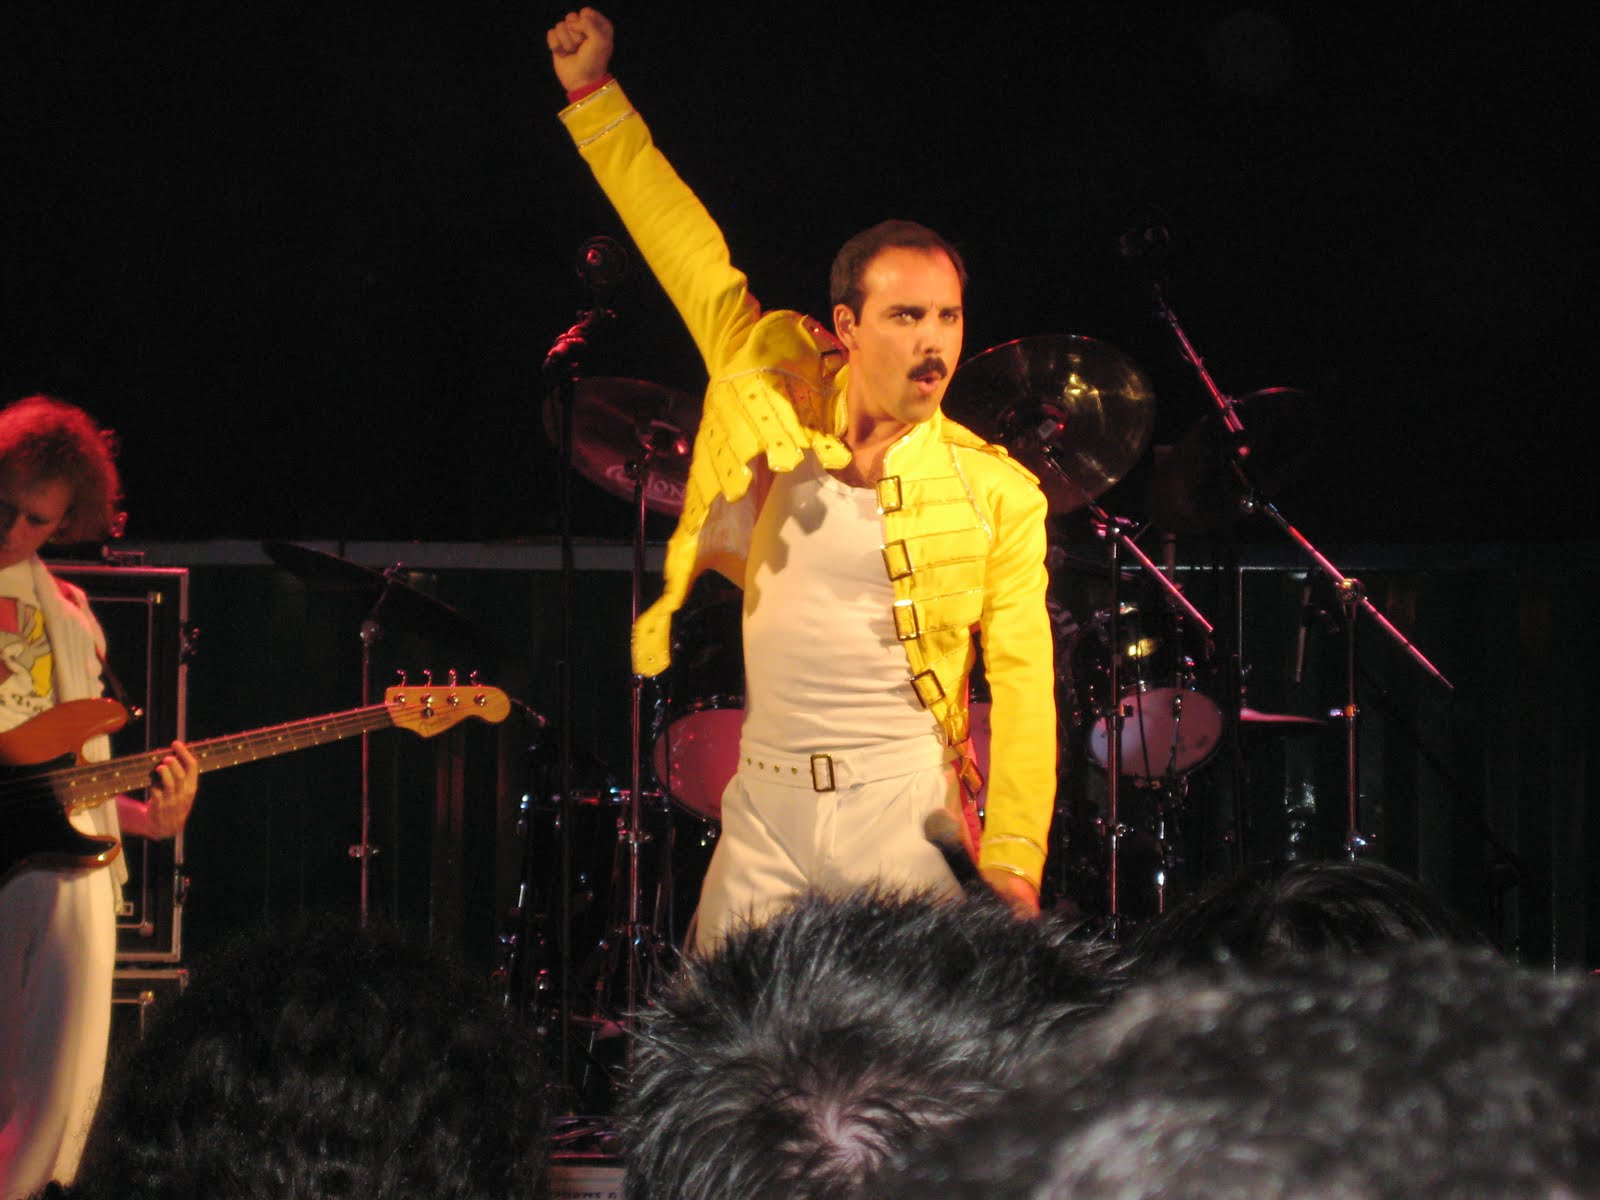 Valladolid daily photo q is for queen tribute band